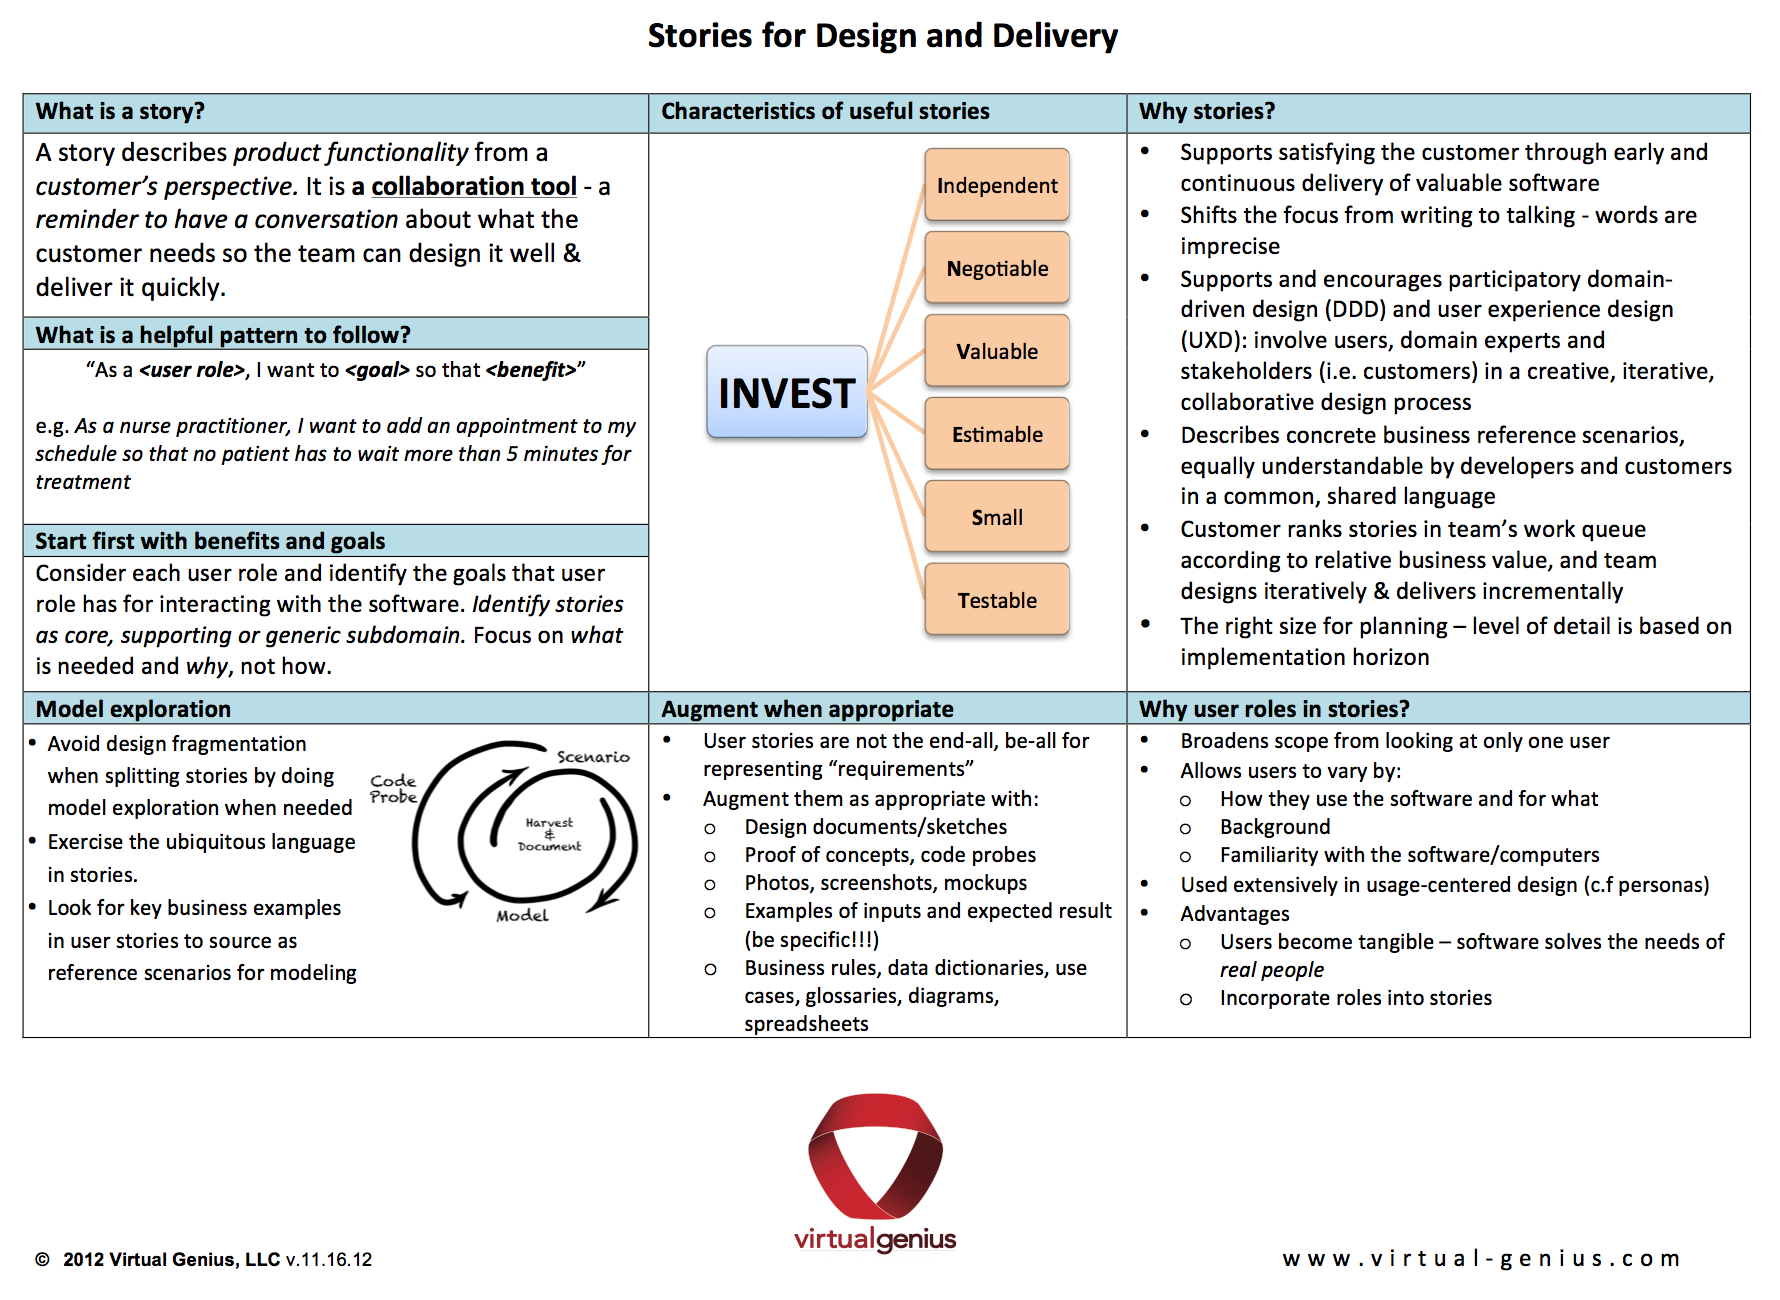 Stories for design and delivery - Front